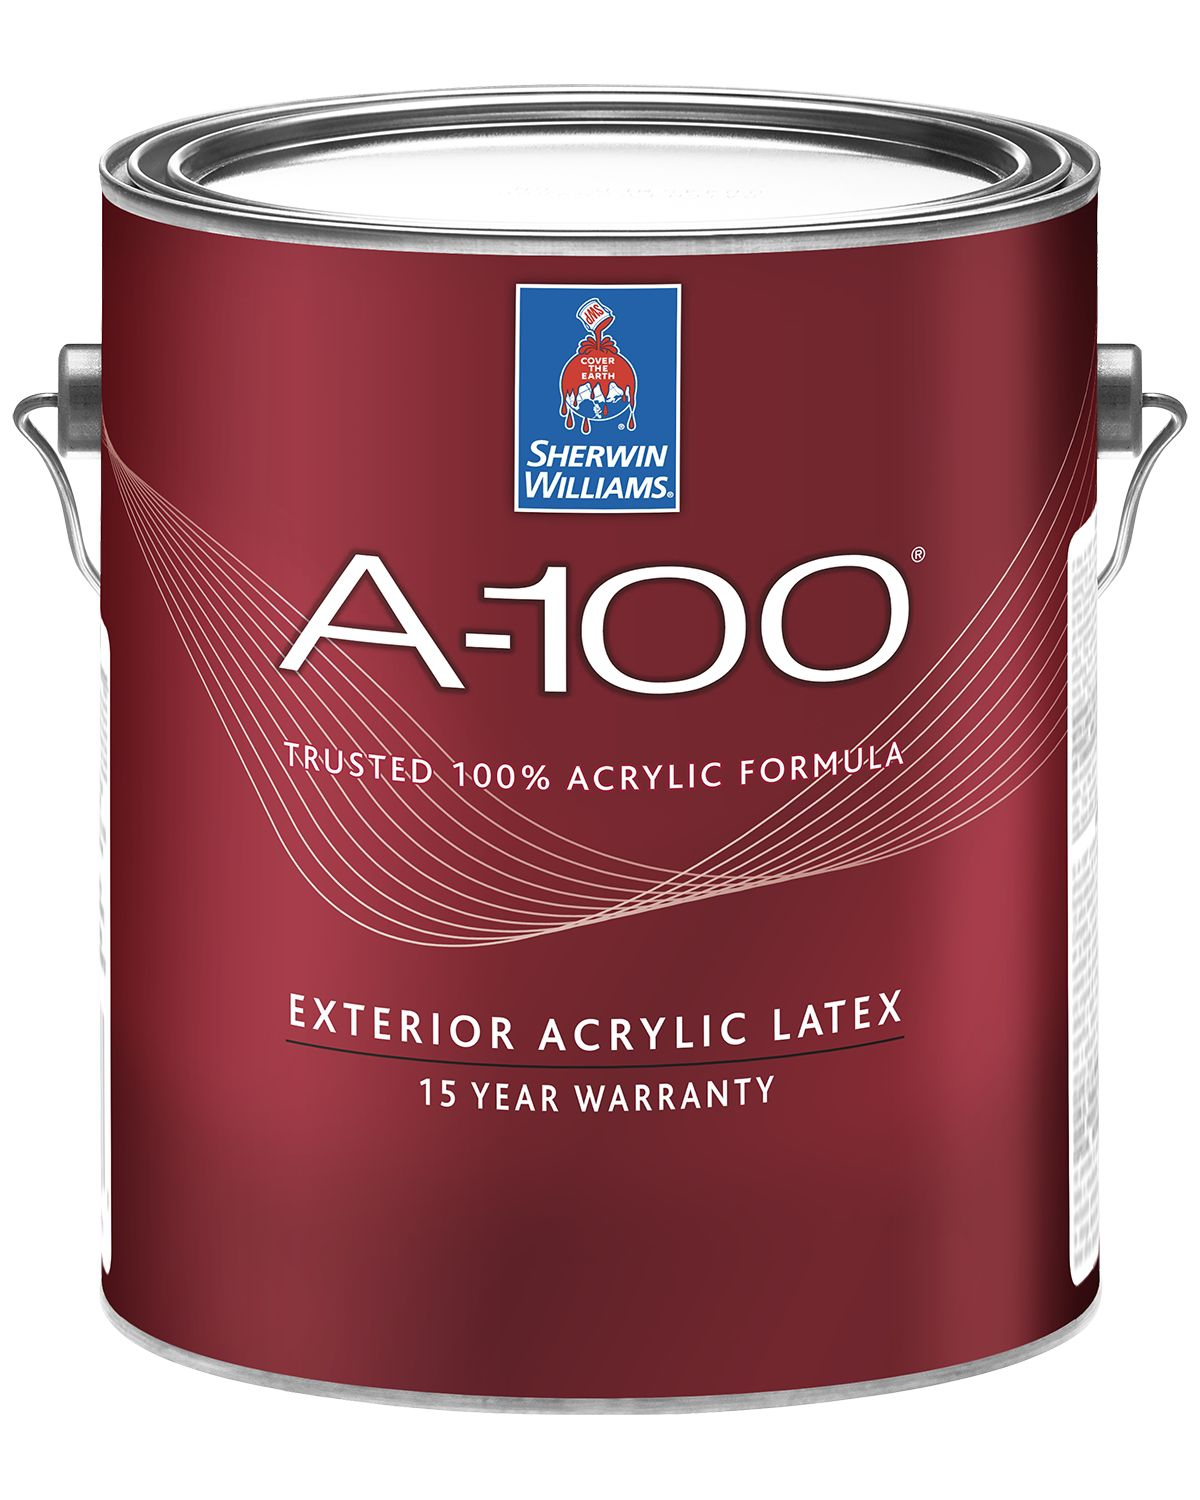 A-100® Exterior Acrylic Latex Paint - Sherwin-Williams